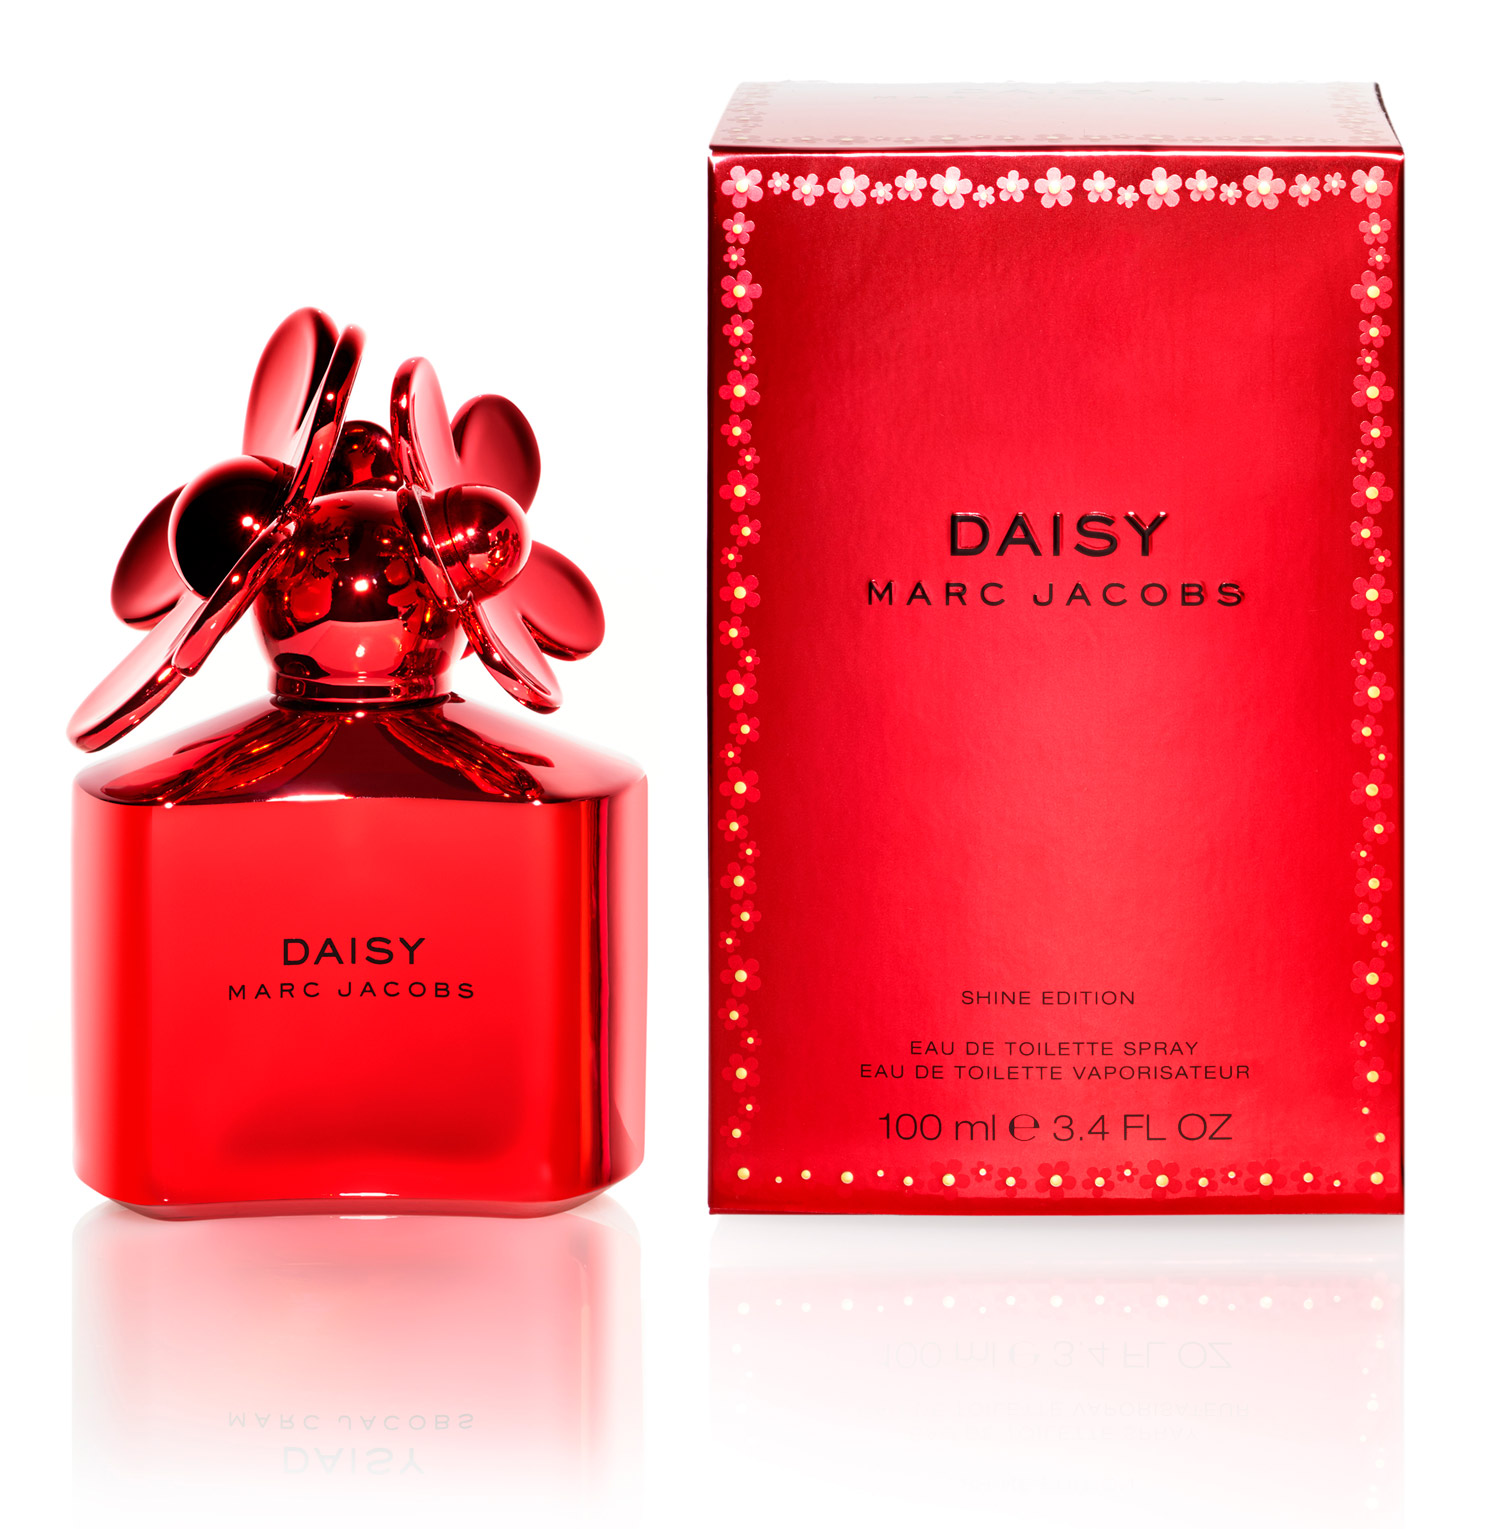 6219925847b9 Daisy Shine Red Marc Jacobs perfume - a fragrance for women 2016